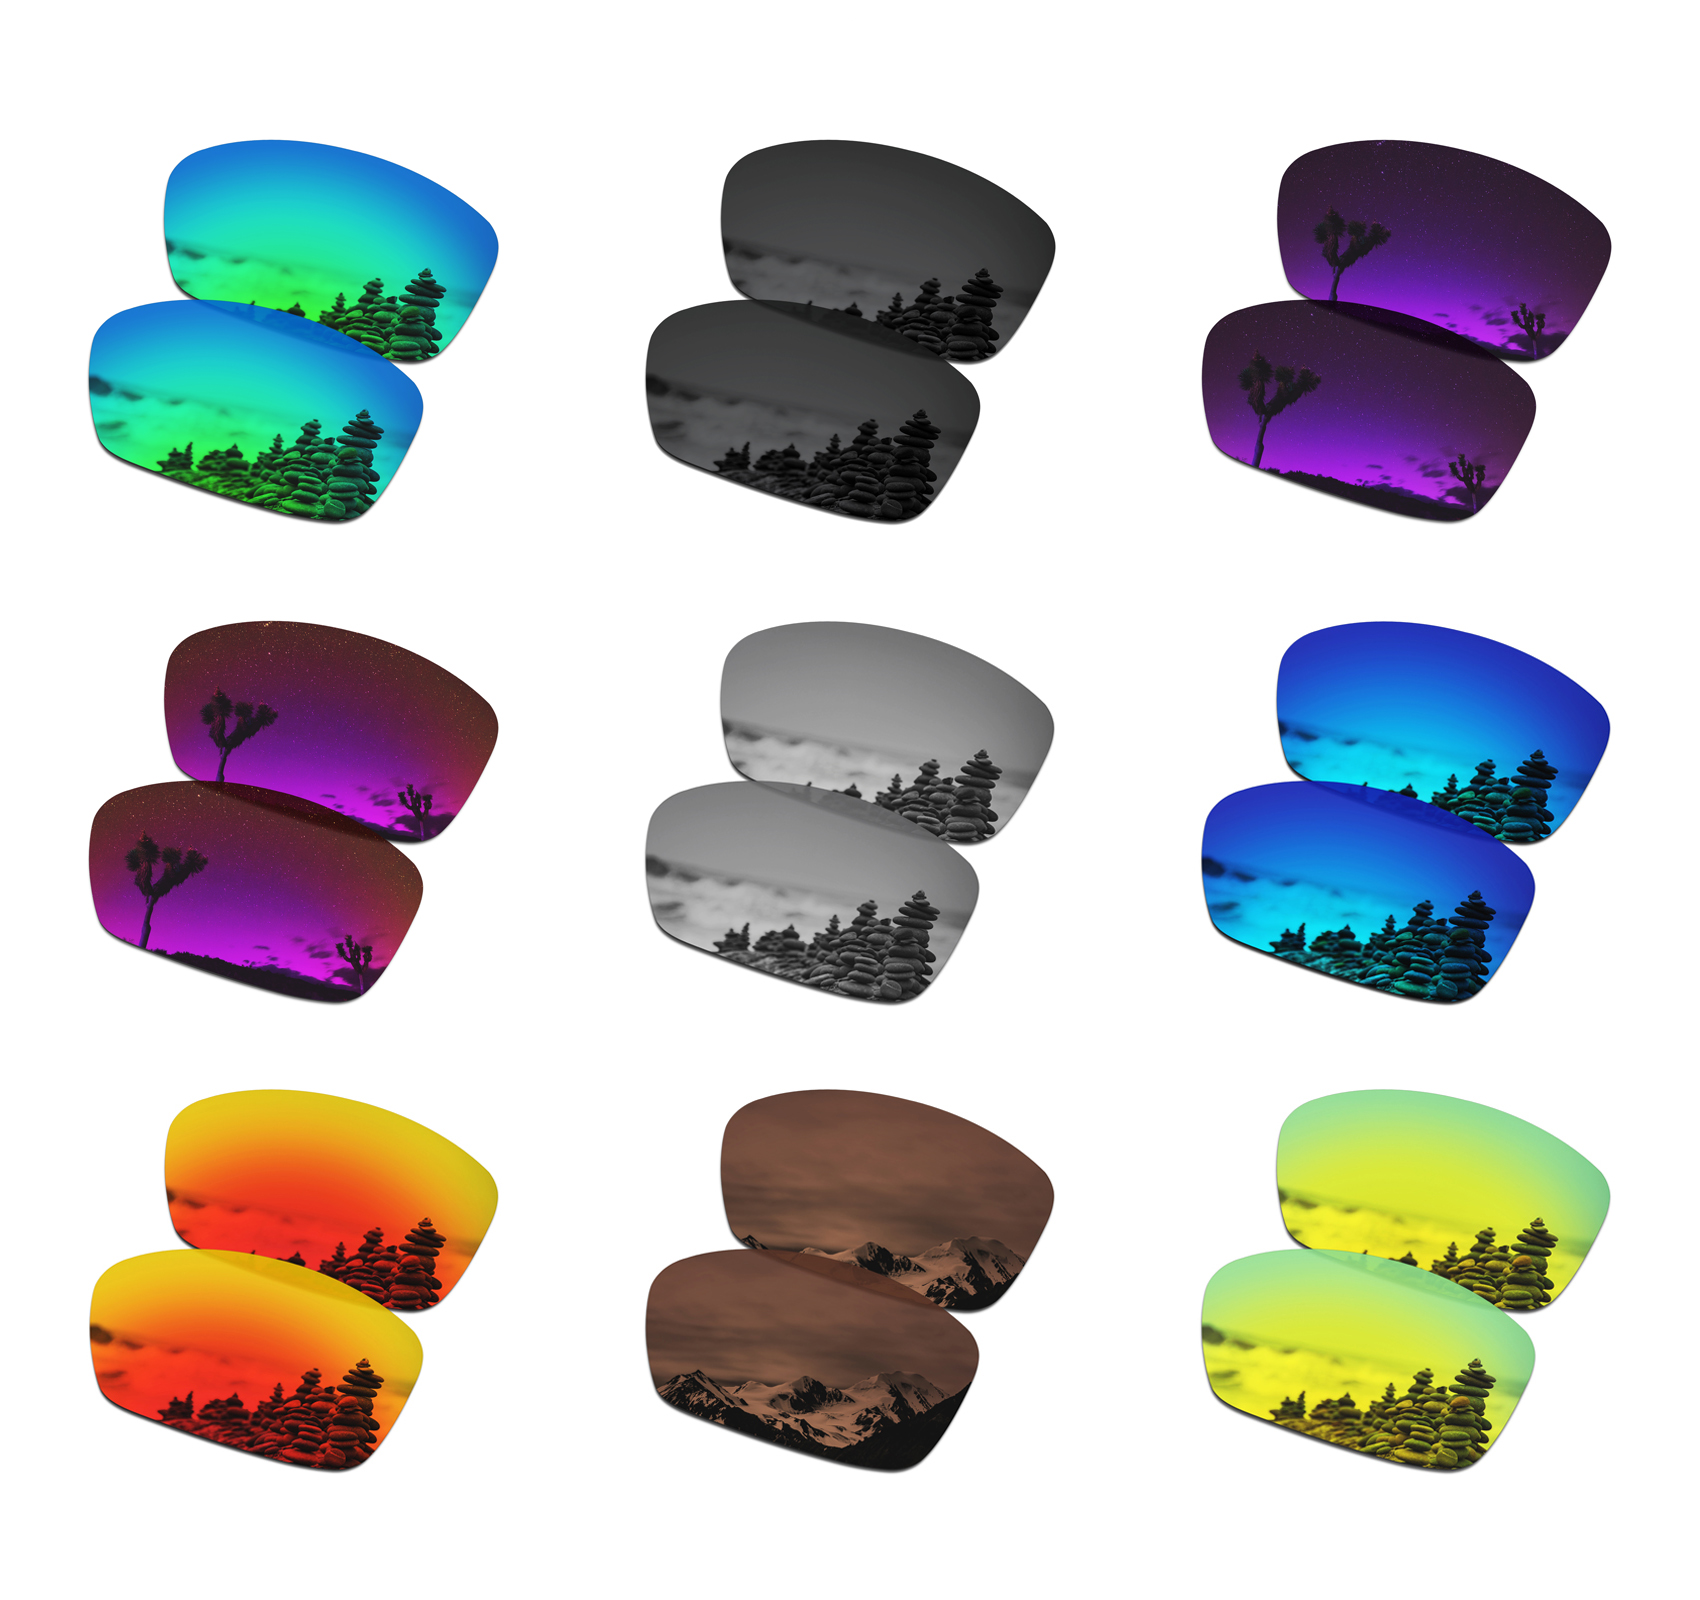 SmartVLT Polarized Replacement Lenses For Oakley Hijinx Sunglasses - Multiple Options